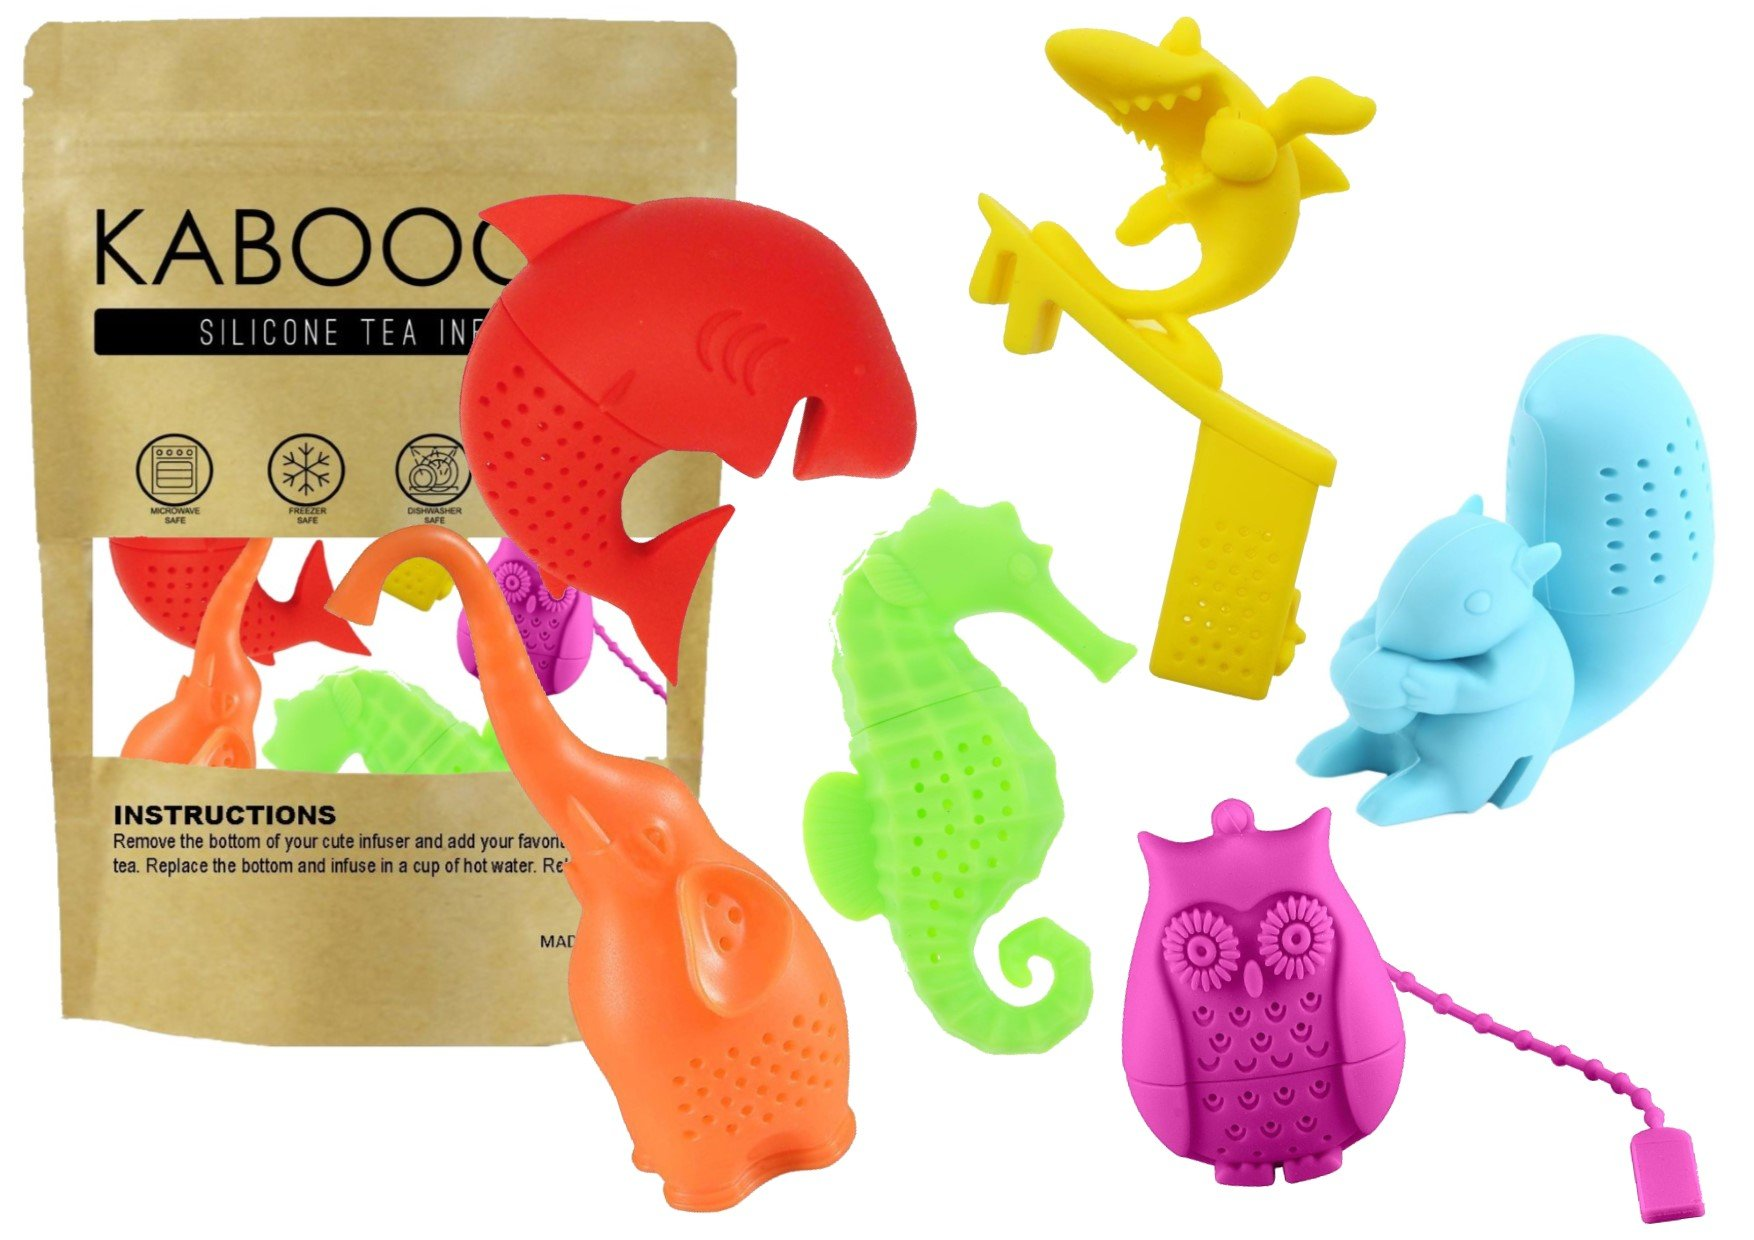 Animal Tea Party 6 Pack Silicone Tea Infusers, Reusable Cute Loose Leaf Tea Diffuser Strainer Gift Pack. Includes Elephant, Squirrel, Seahorse, Owl, Shark & Surfing Shark, by KABOOCHY